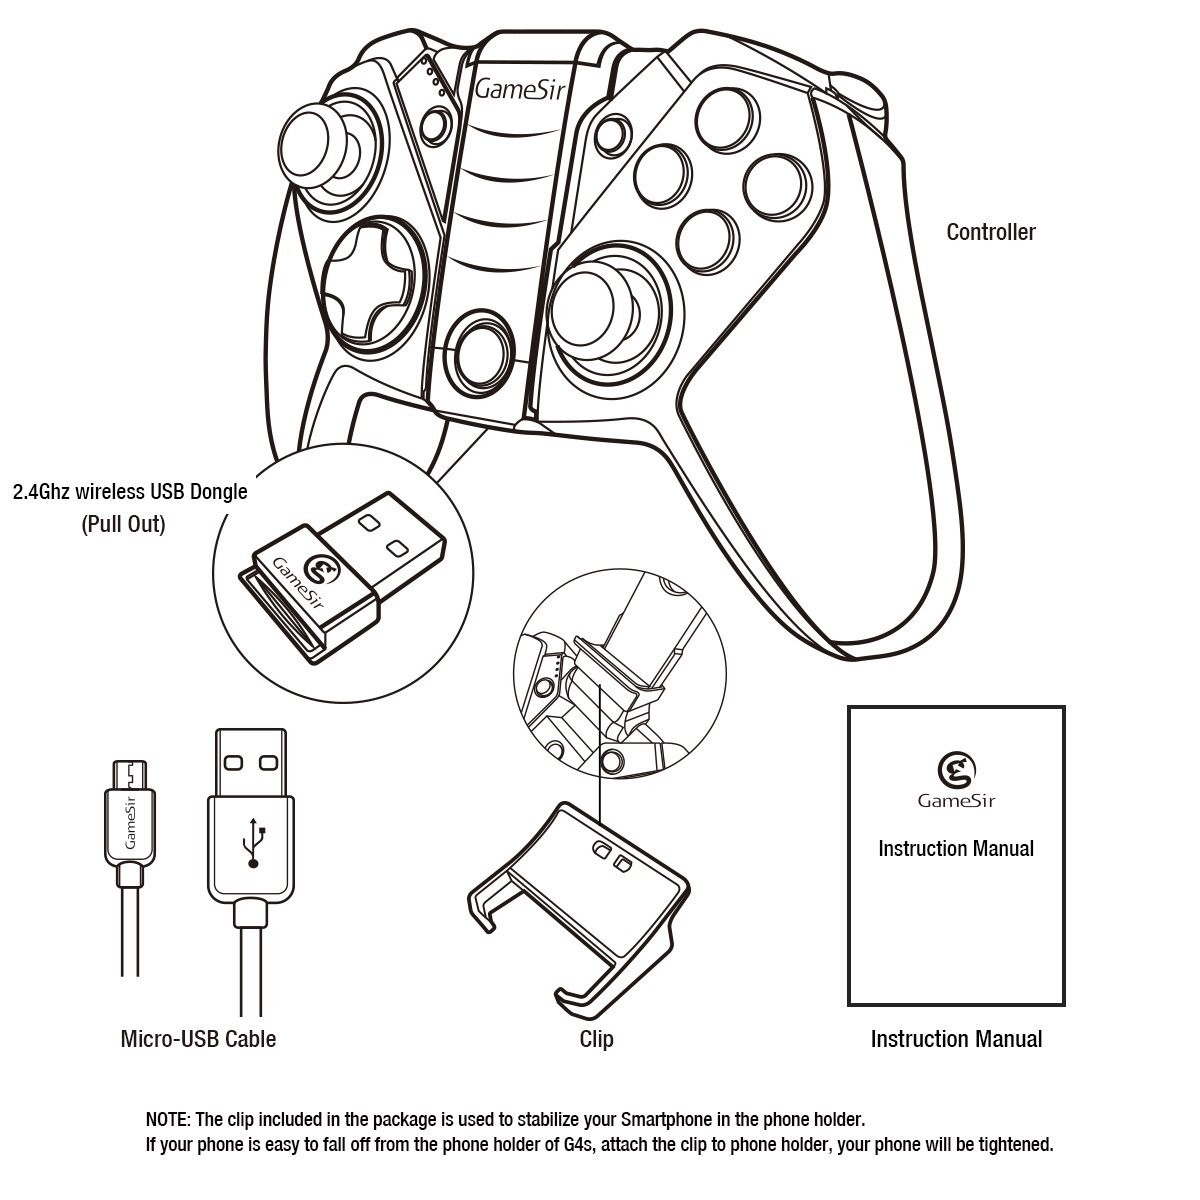 xbox one controller drawing at getdrawings free for personal Solar Cell Schematic Symbol 1200x1200 gamesir g4s bluetooth gaming controller